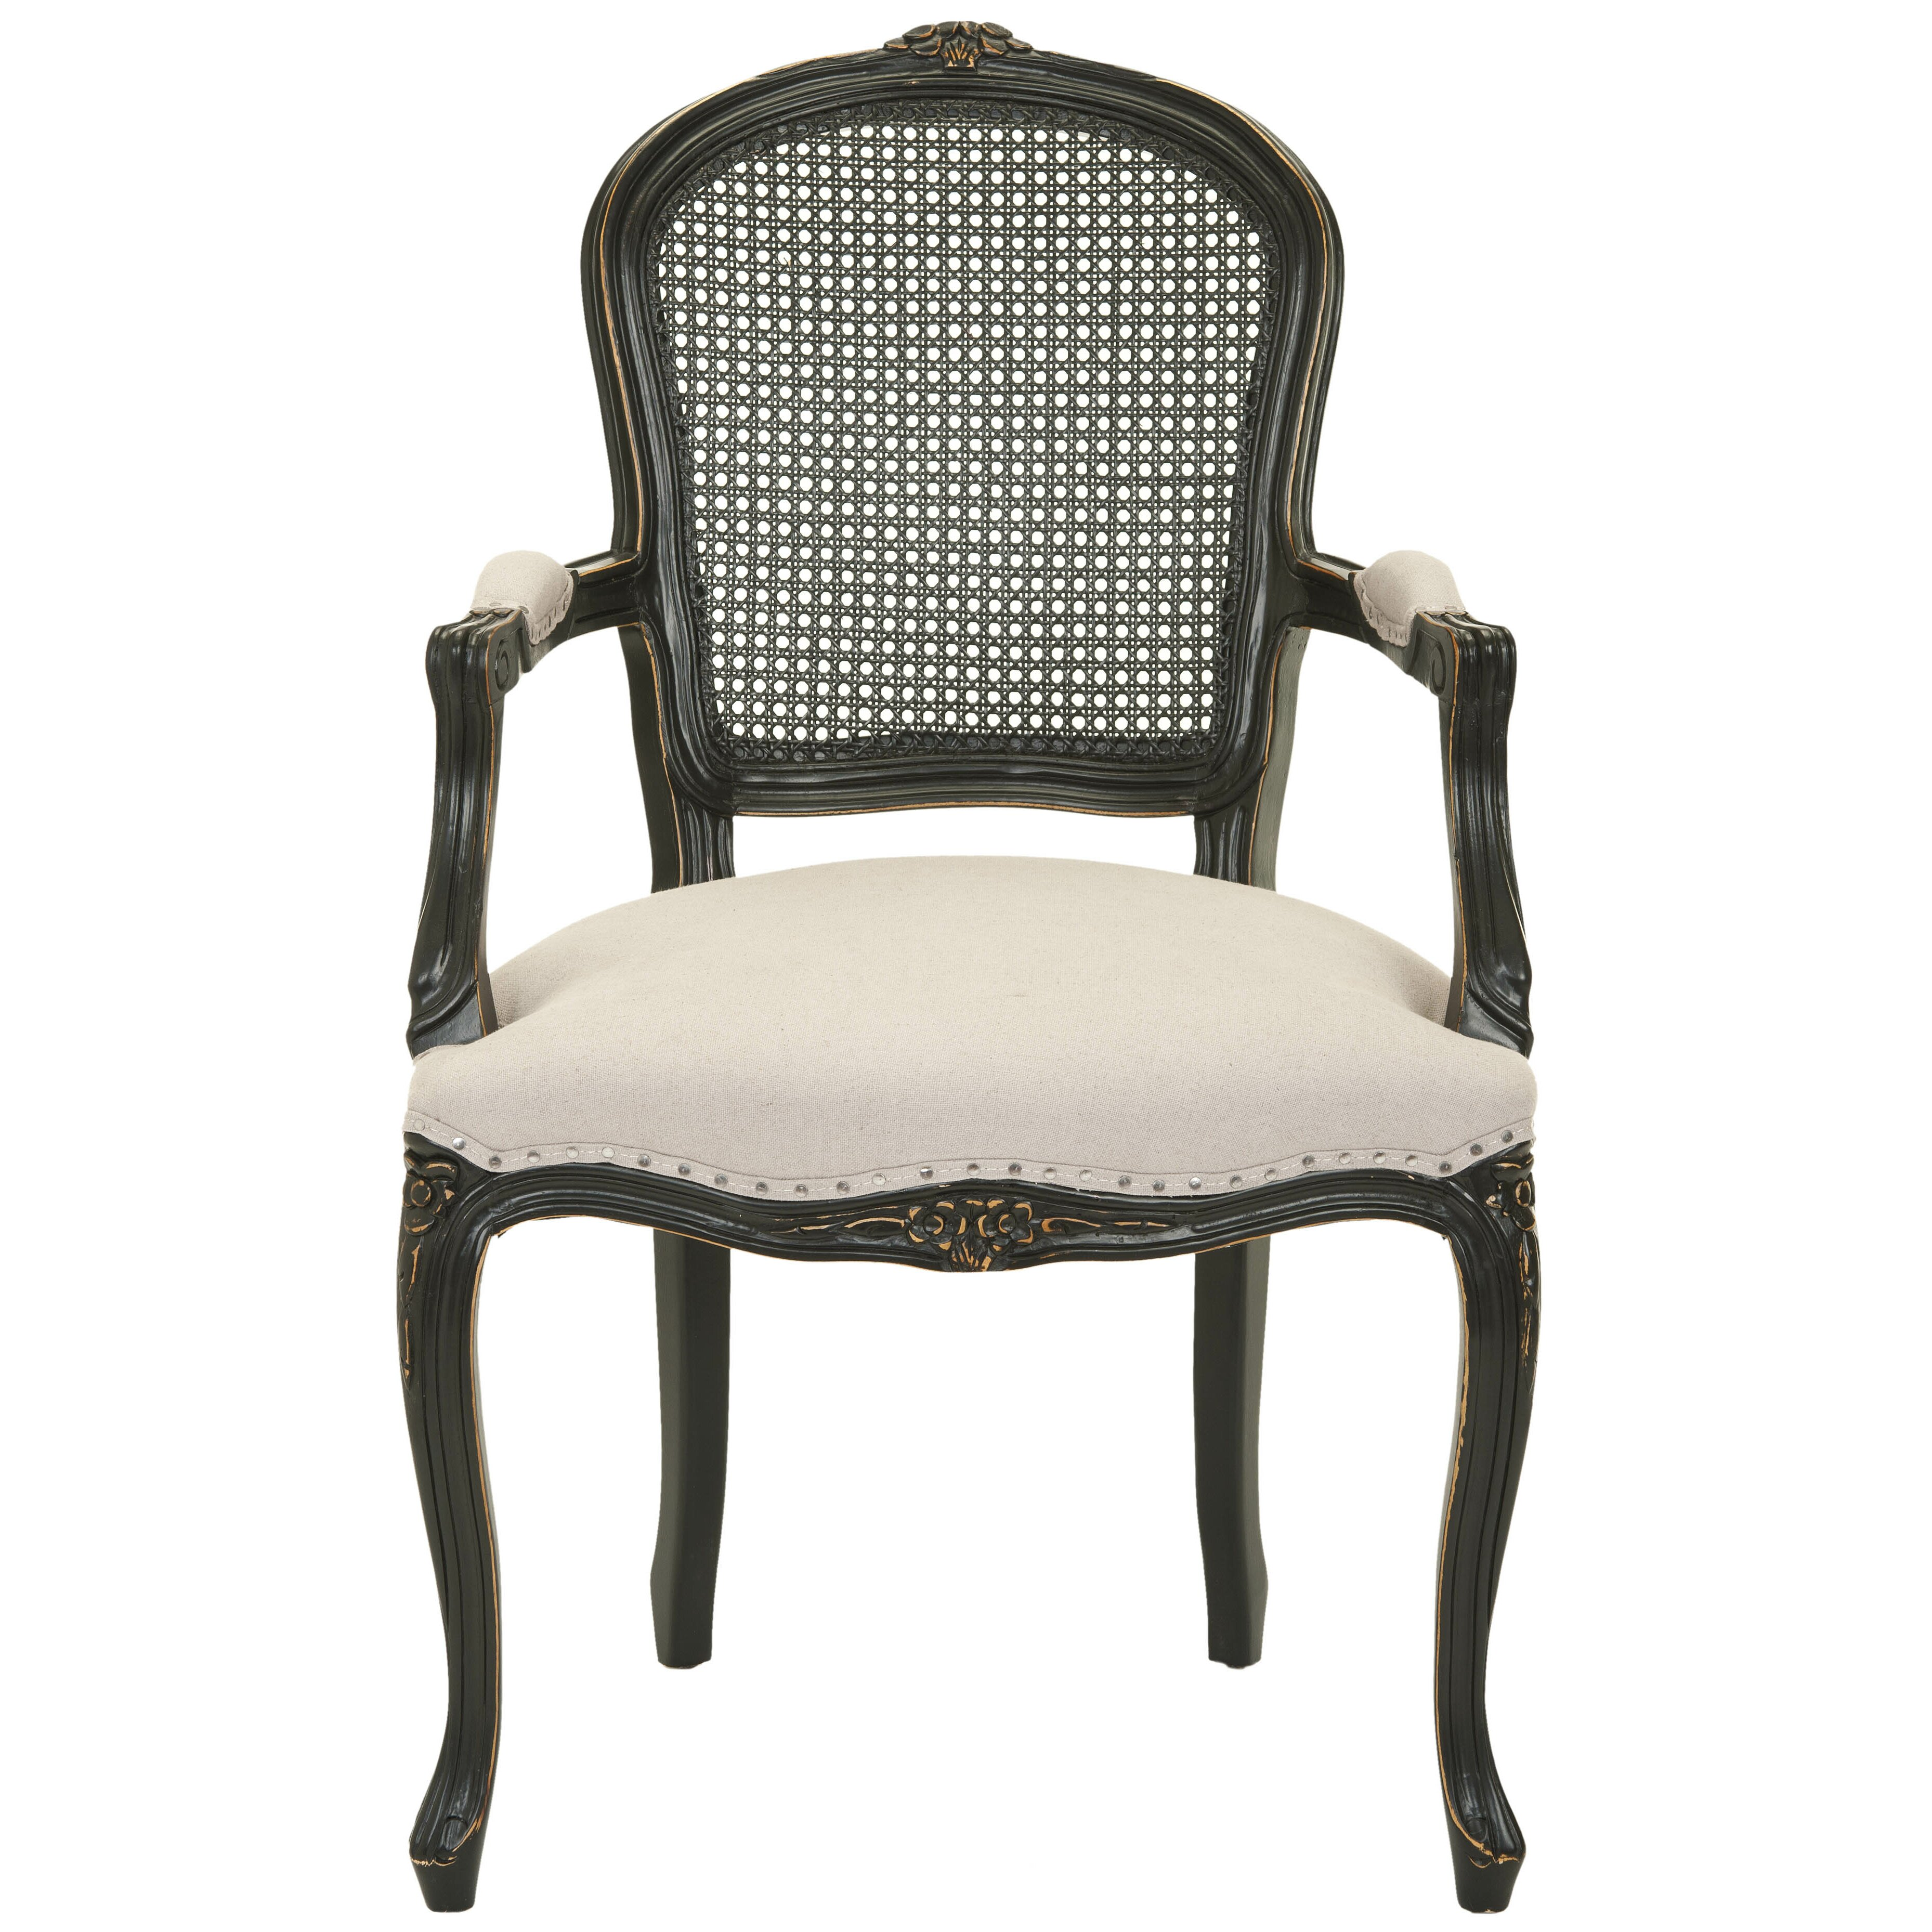 Safavieh Cindy Arm Chair With Nailheads In Black Antique